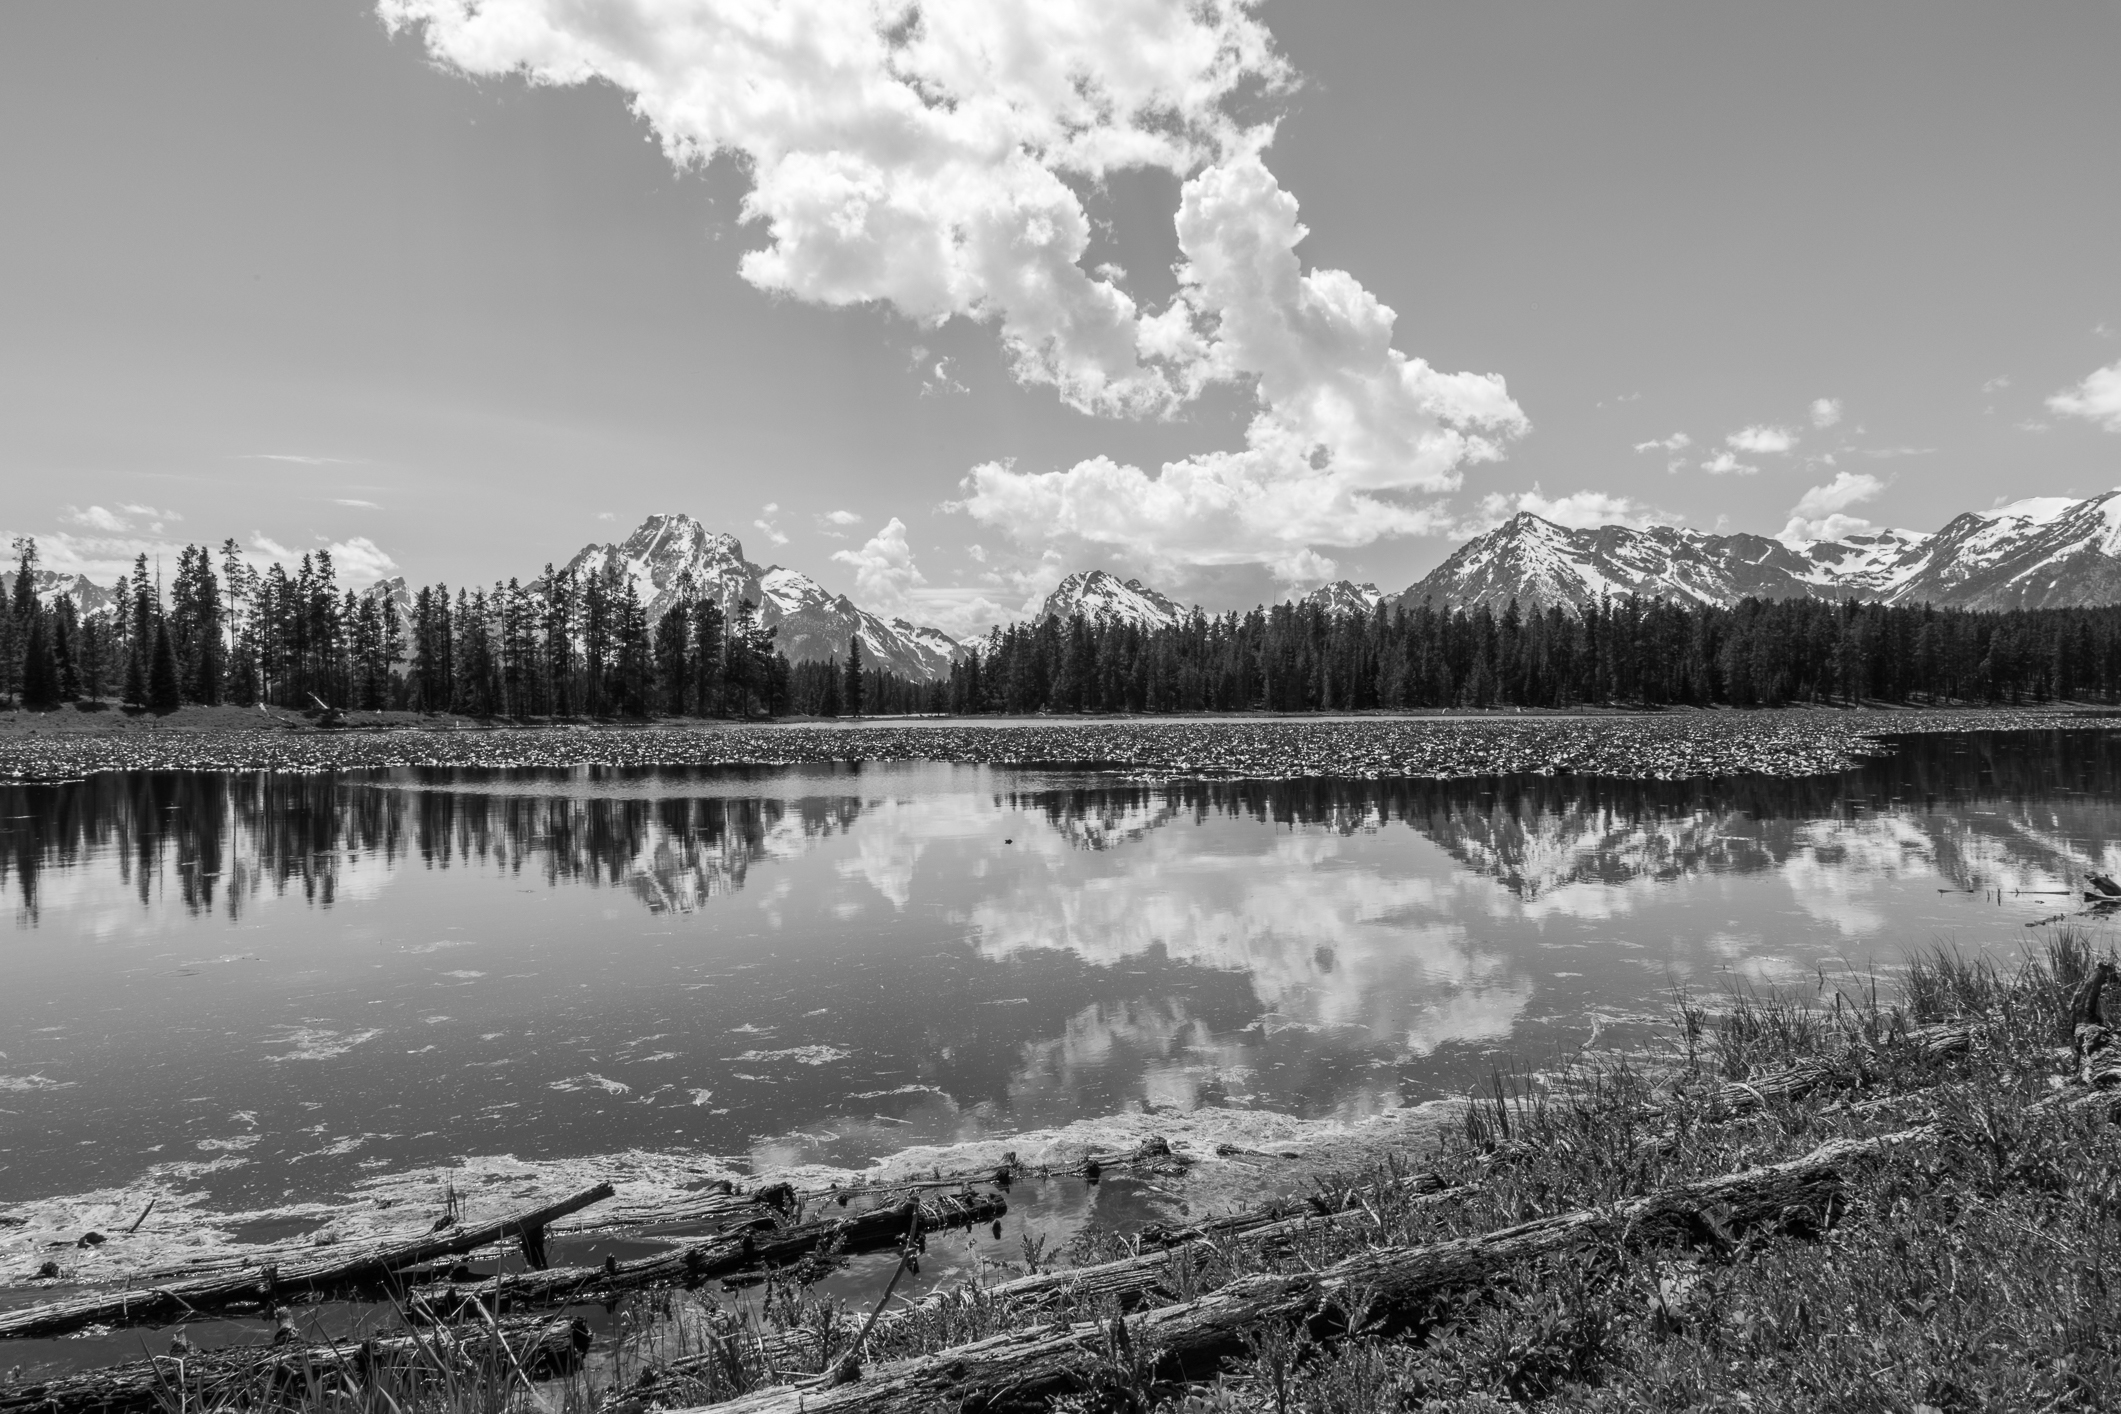 Colter Bay, Image # 3237